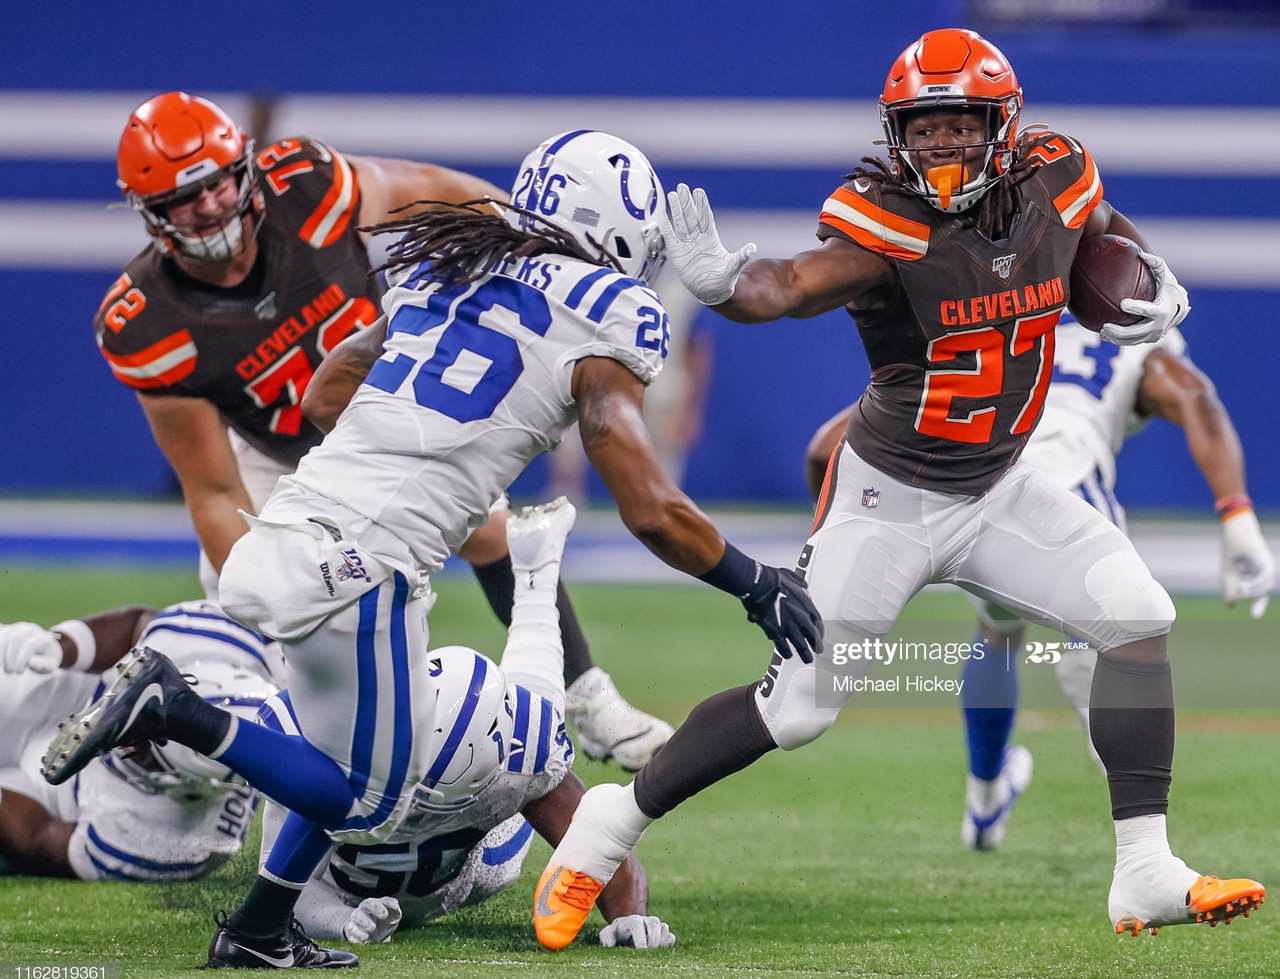 Cleveland Browns Vs Indianapolis Colts preview